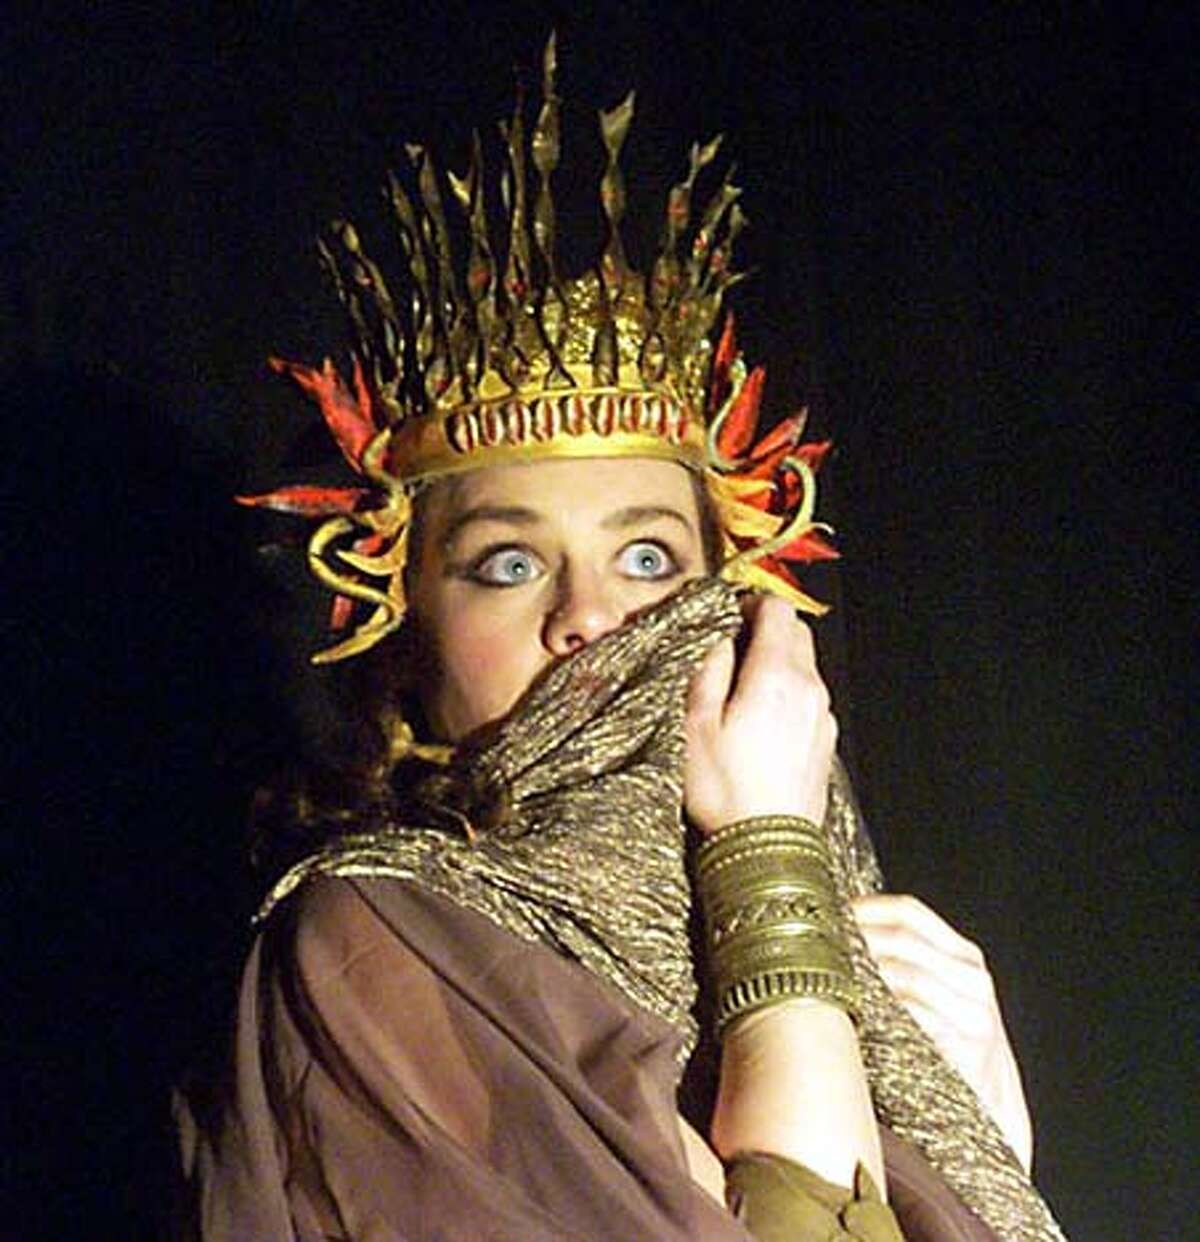 Recent local productions of the Medea story include the Shotgun Players'